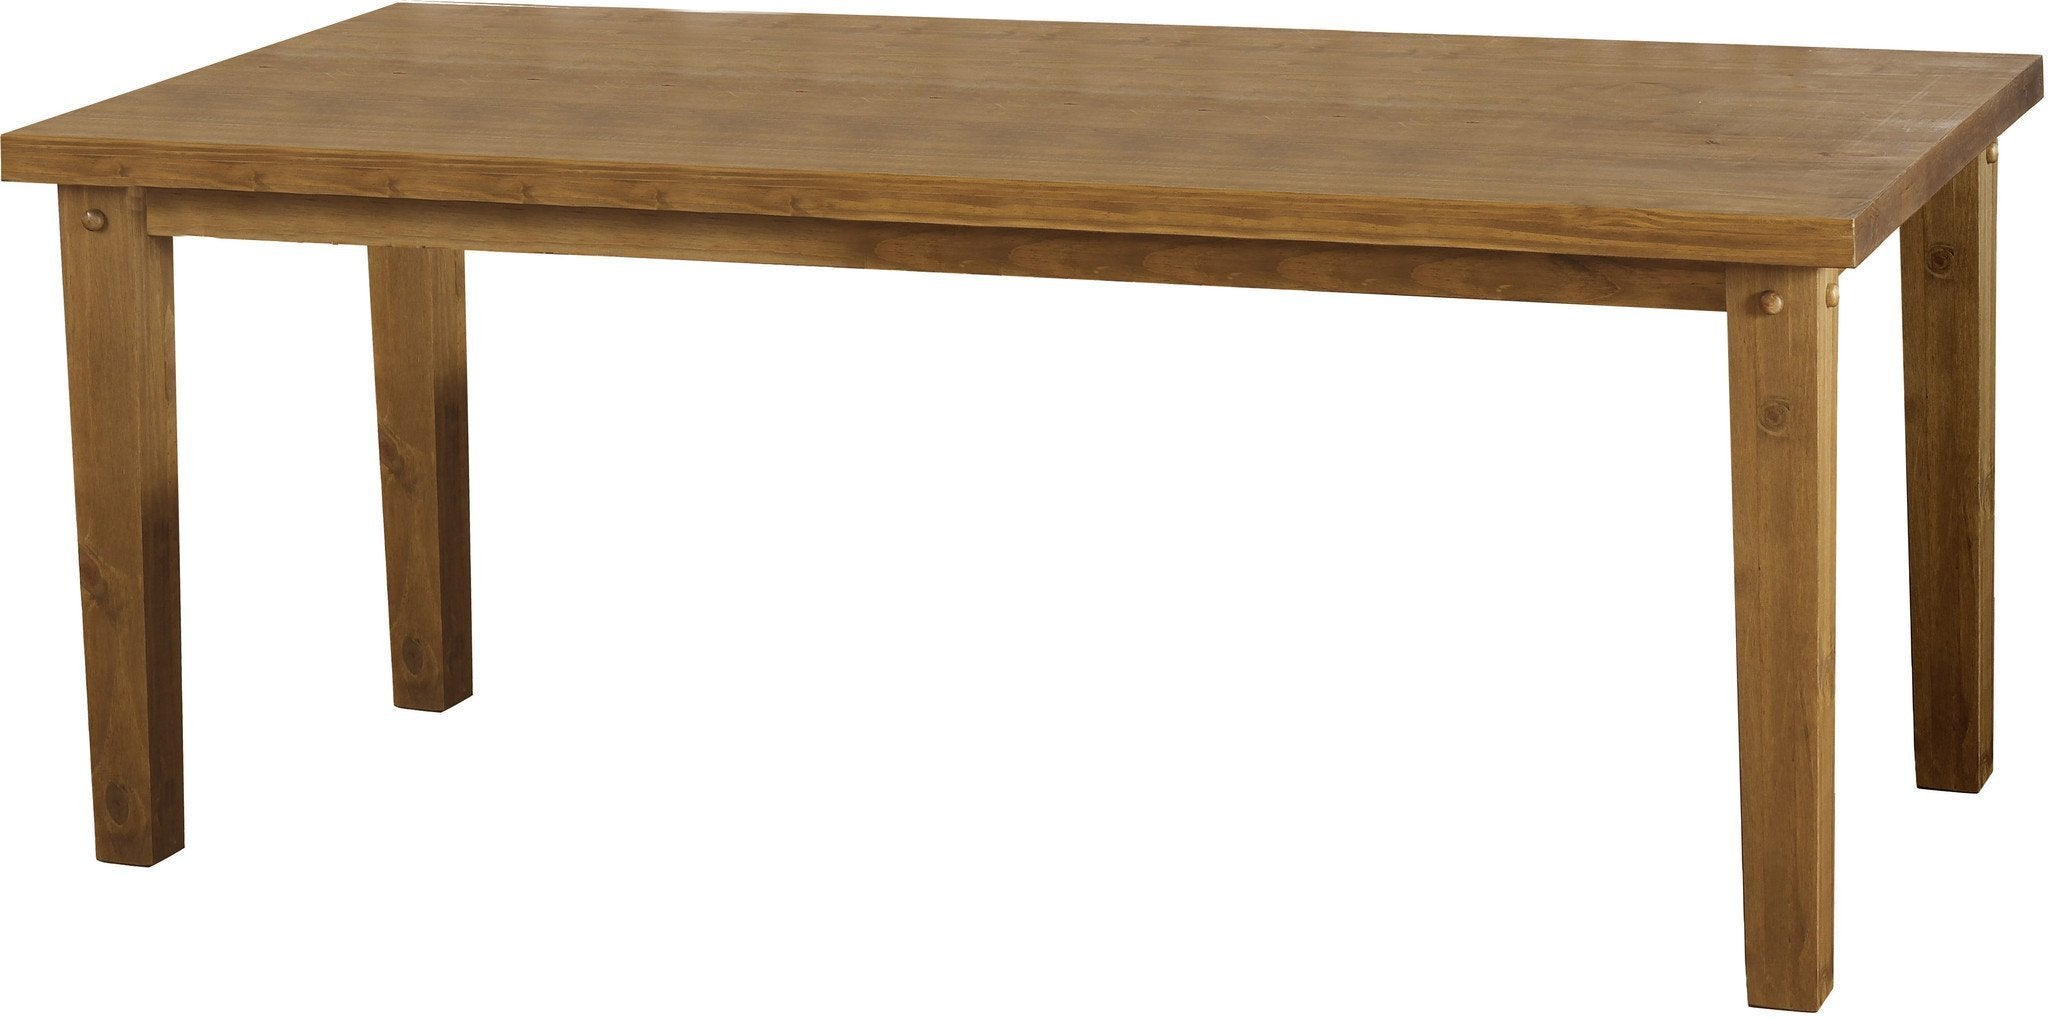 Tortilla Large Dining Table Rustic Chunky Pine at GoFurn